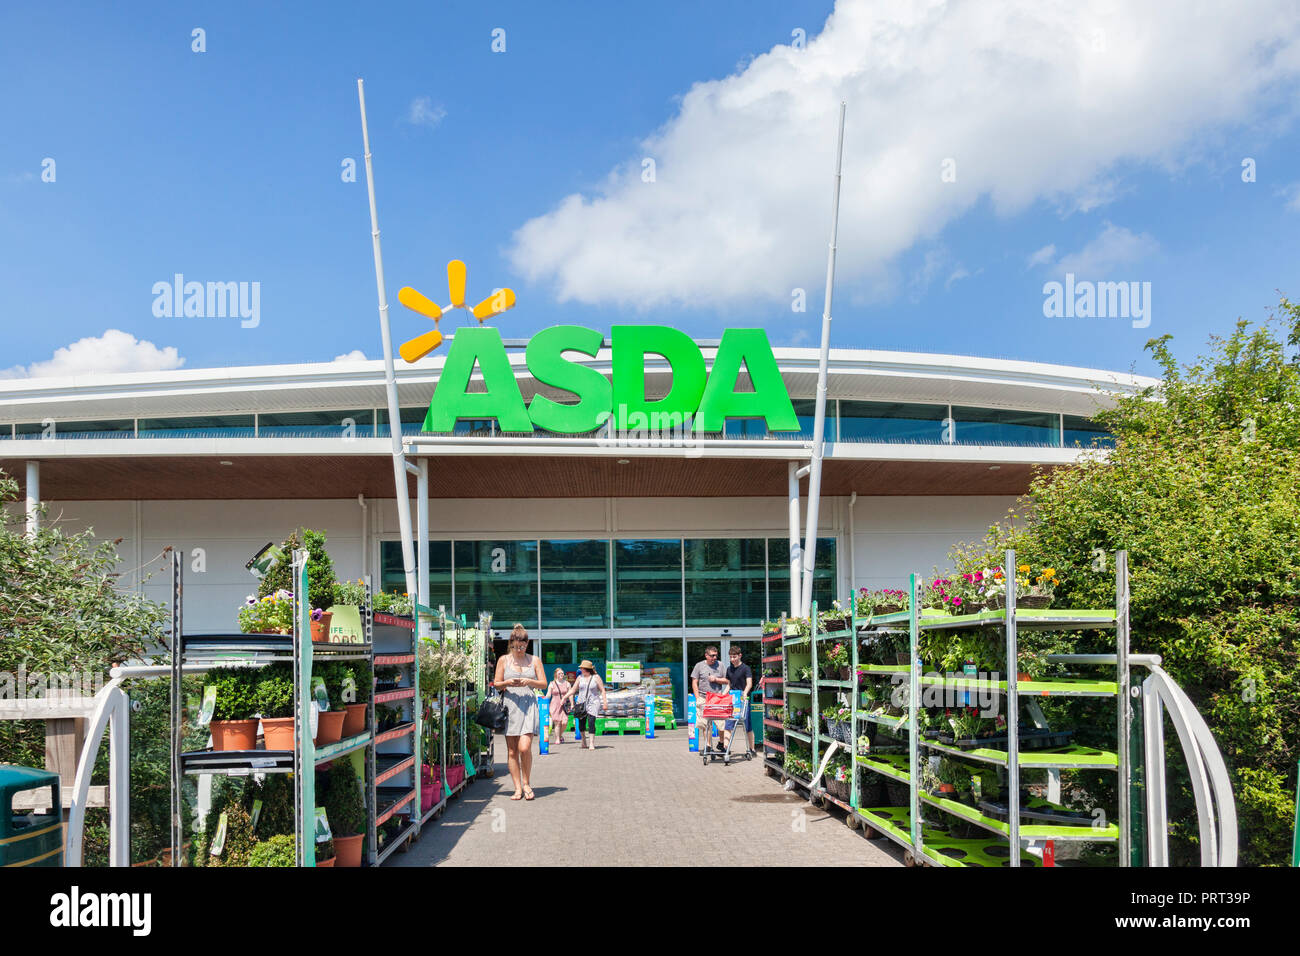 28 May 2018: Newton Abbot, Devon, UK - Asda supermarket entrance, with people leaving with their shopping. Stock Photo